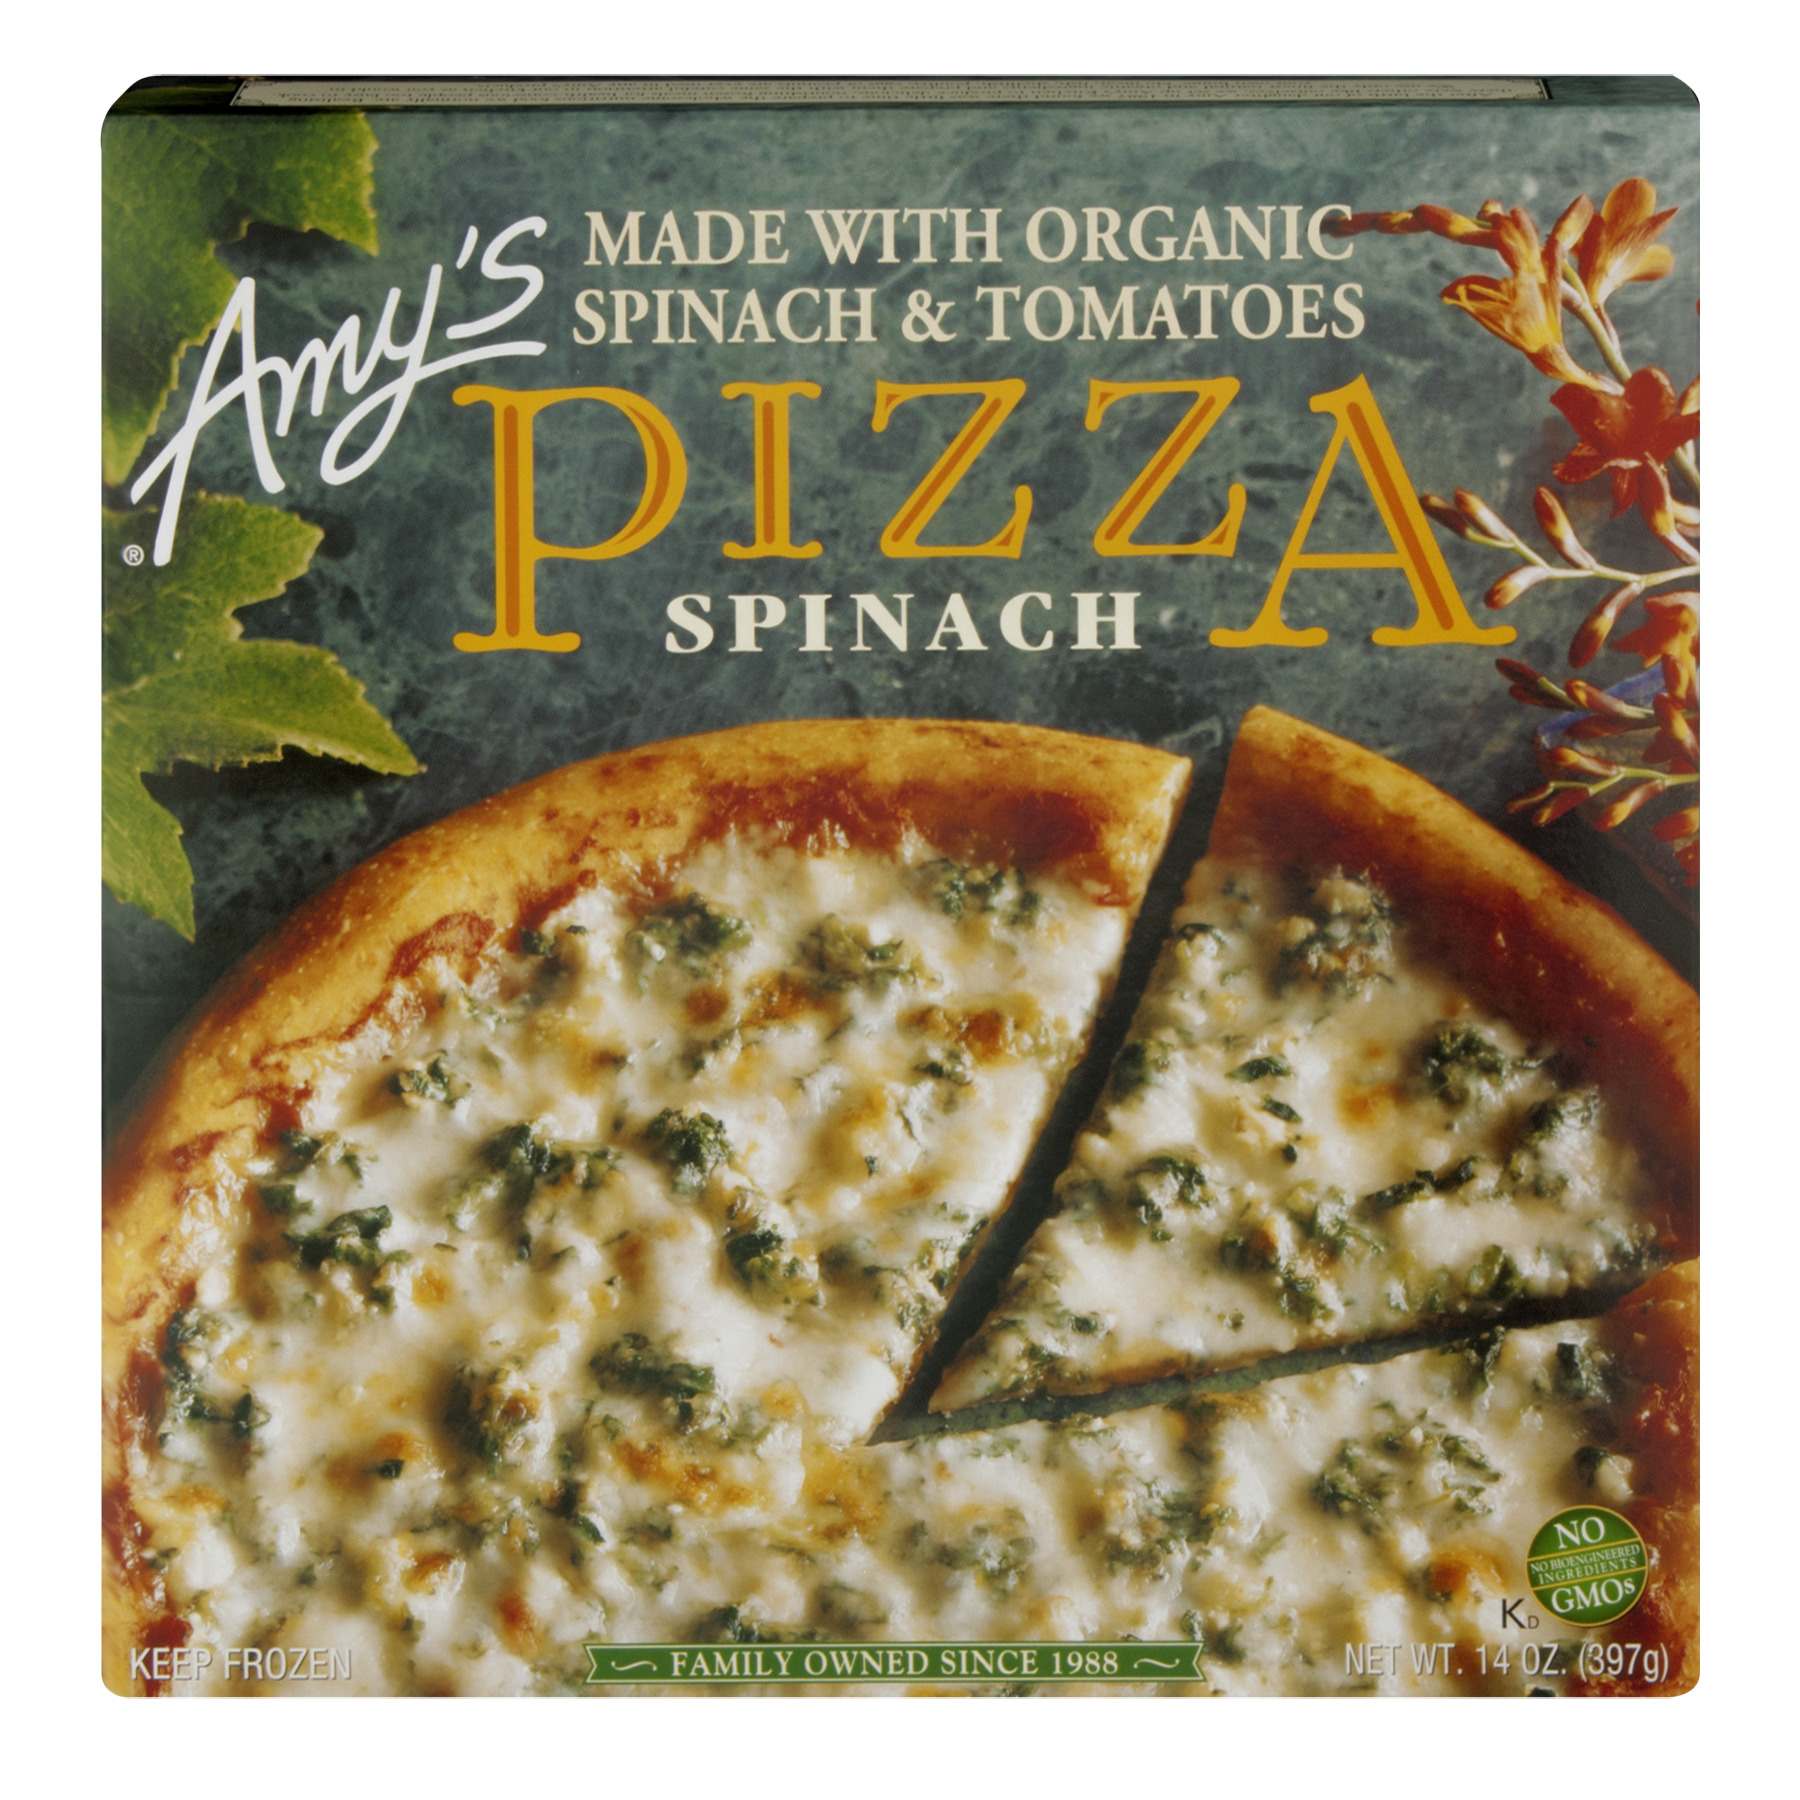 Amy's Spinach Pizza, 14 oz